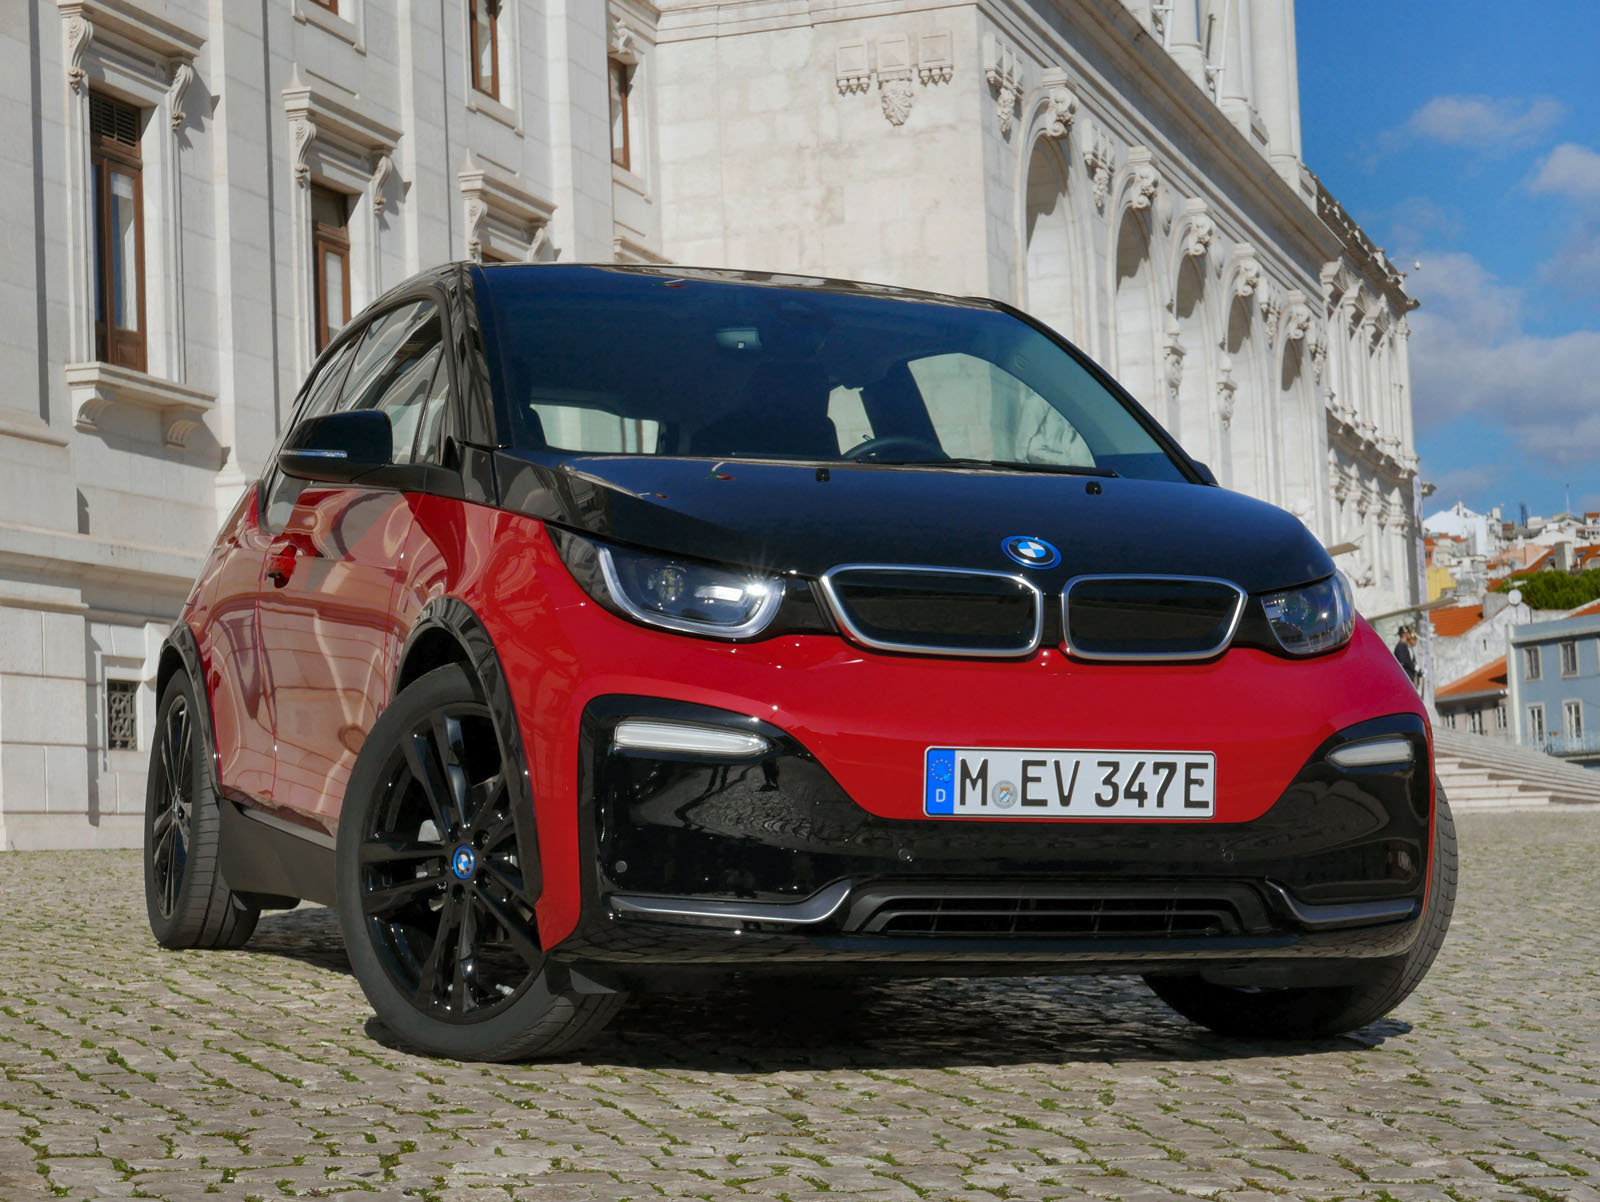 2018 BMW i3s Review and First Drive - AutoGuide.com